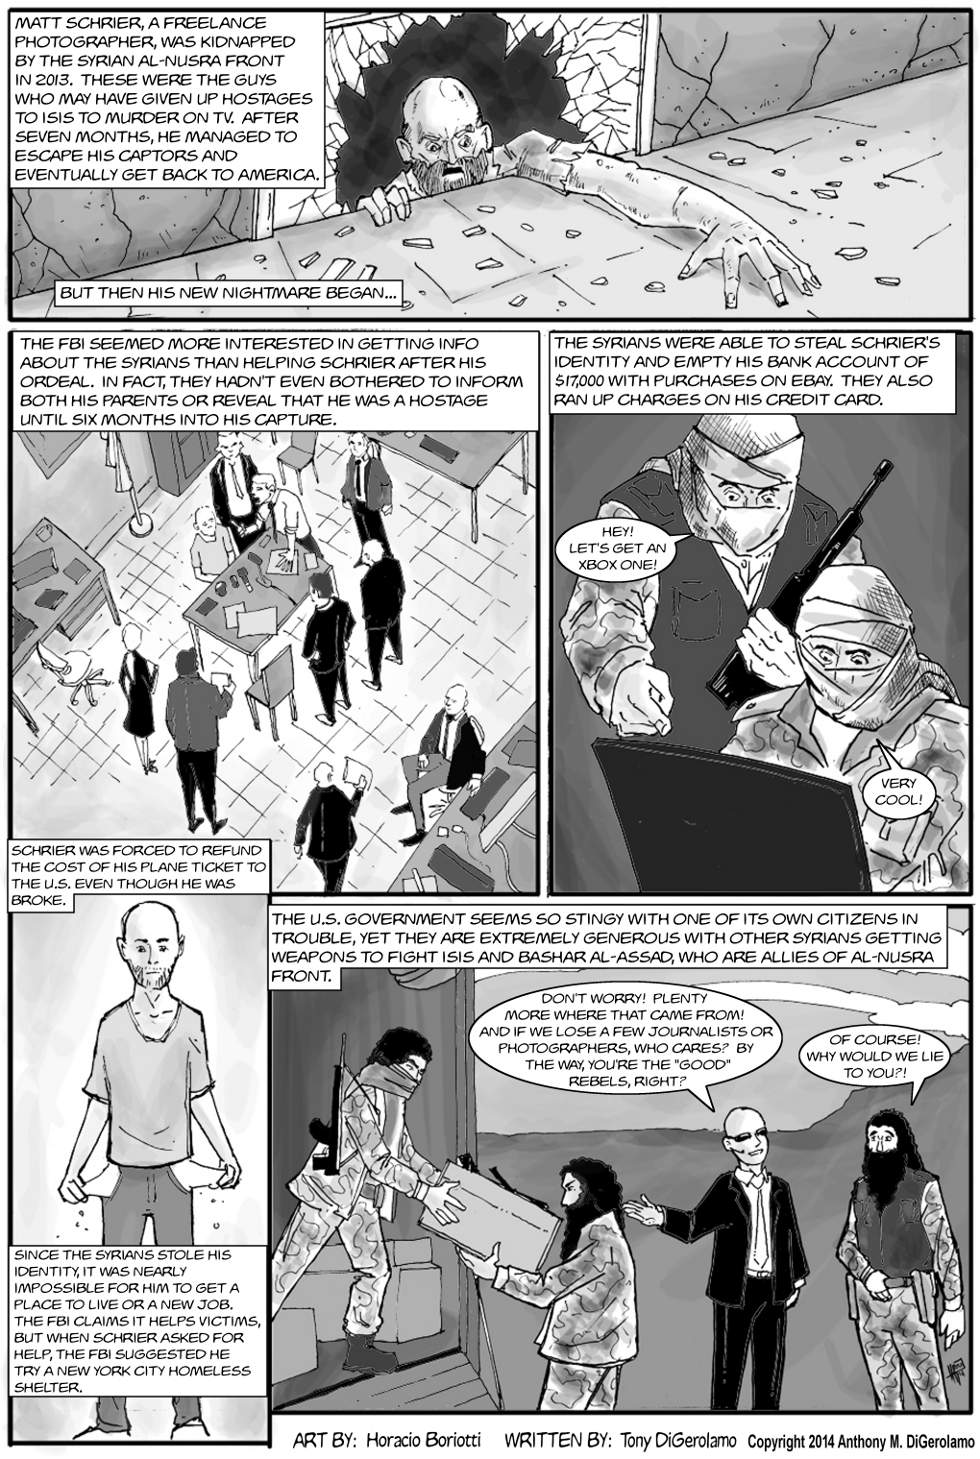 The Antiwar Comic:  The Budget Doesn't Include You